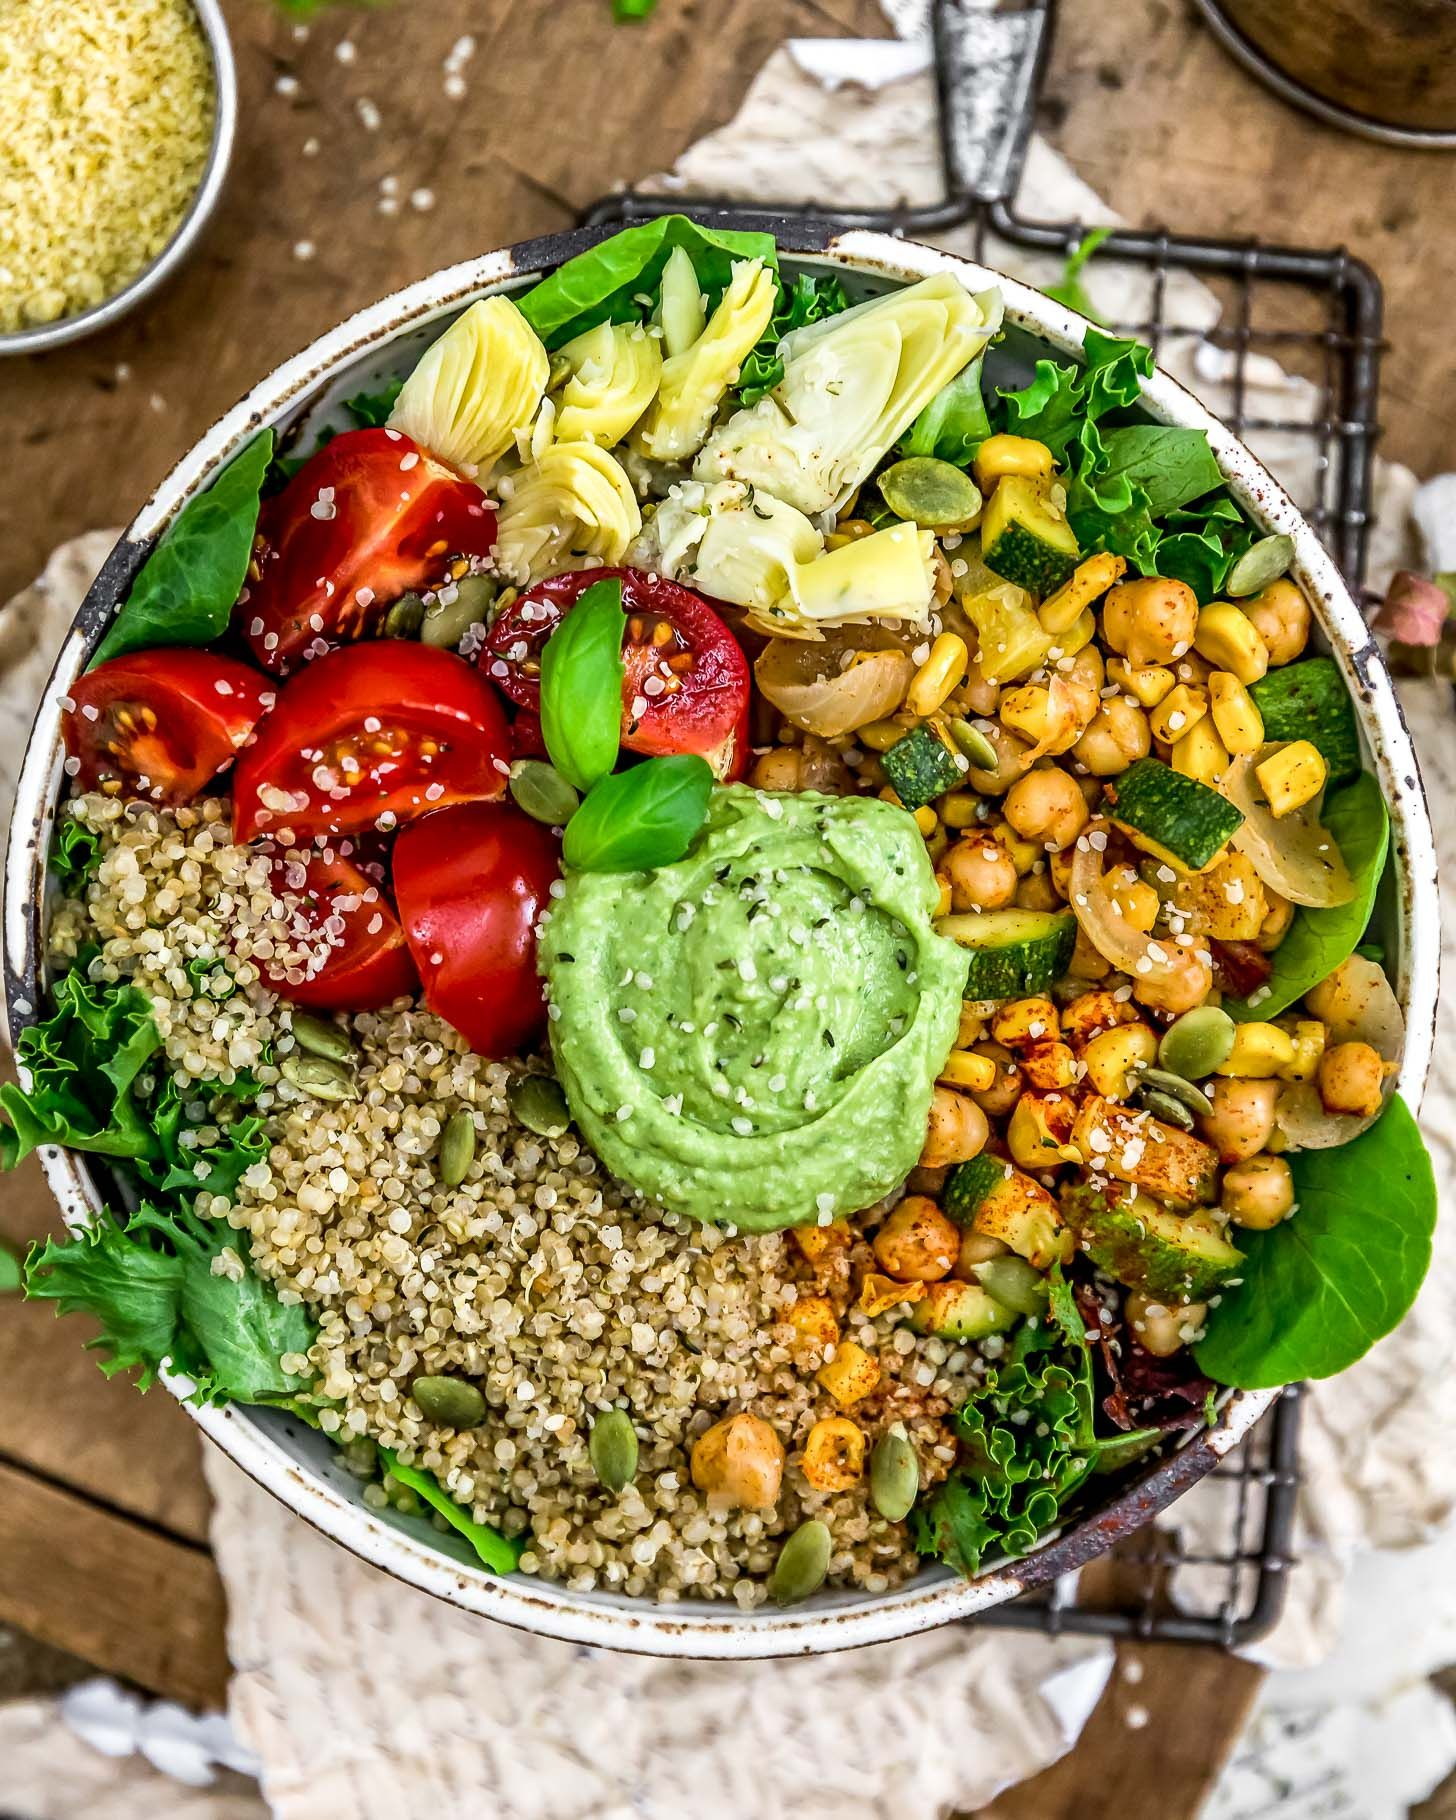 Vegan Oil Free Avocado Pesto Monkey And Me Kitchen Adventures Recipe Healthy Food Photography Raw Food Recipes Recipes With Parmesan Cheese